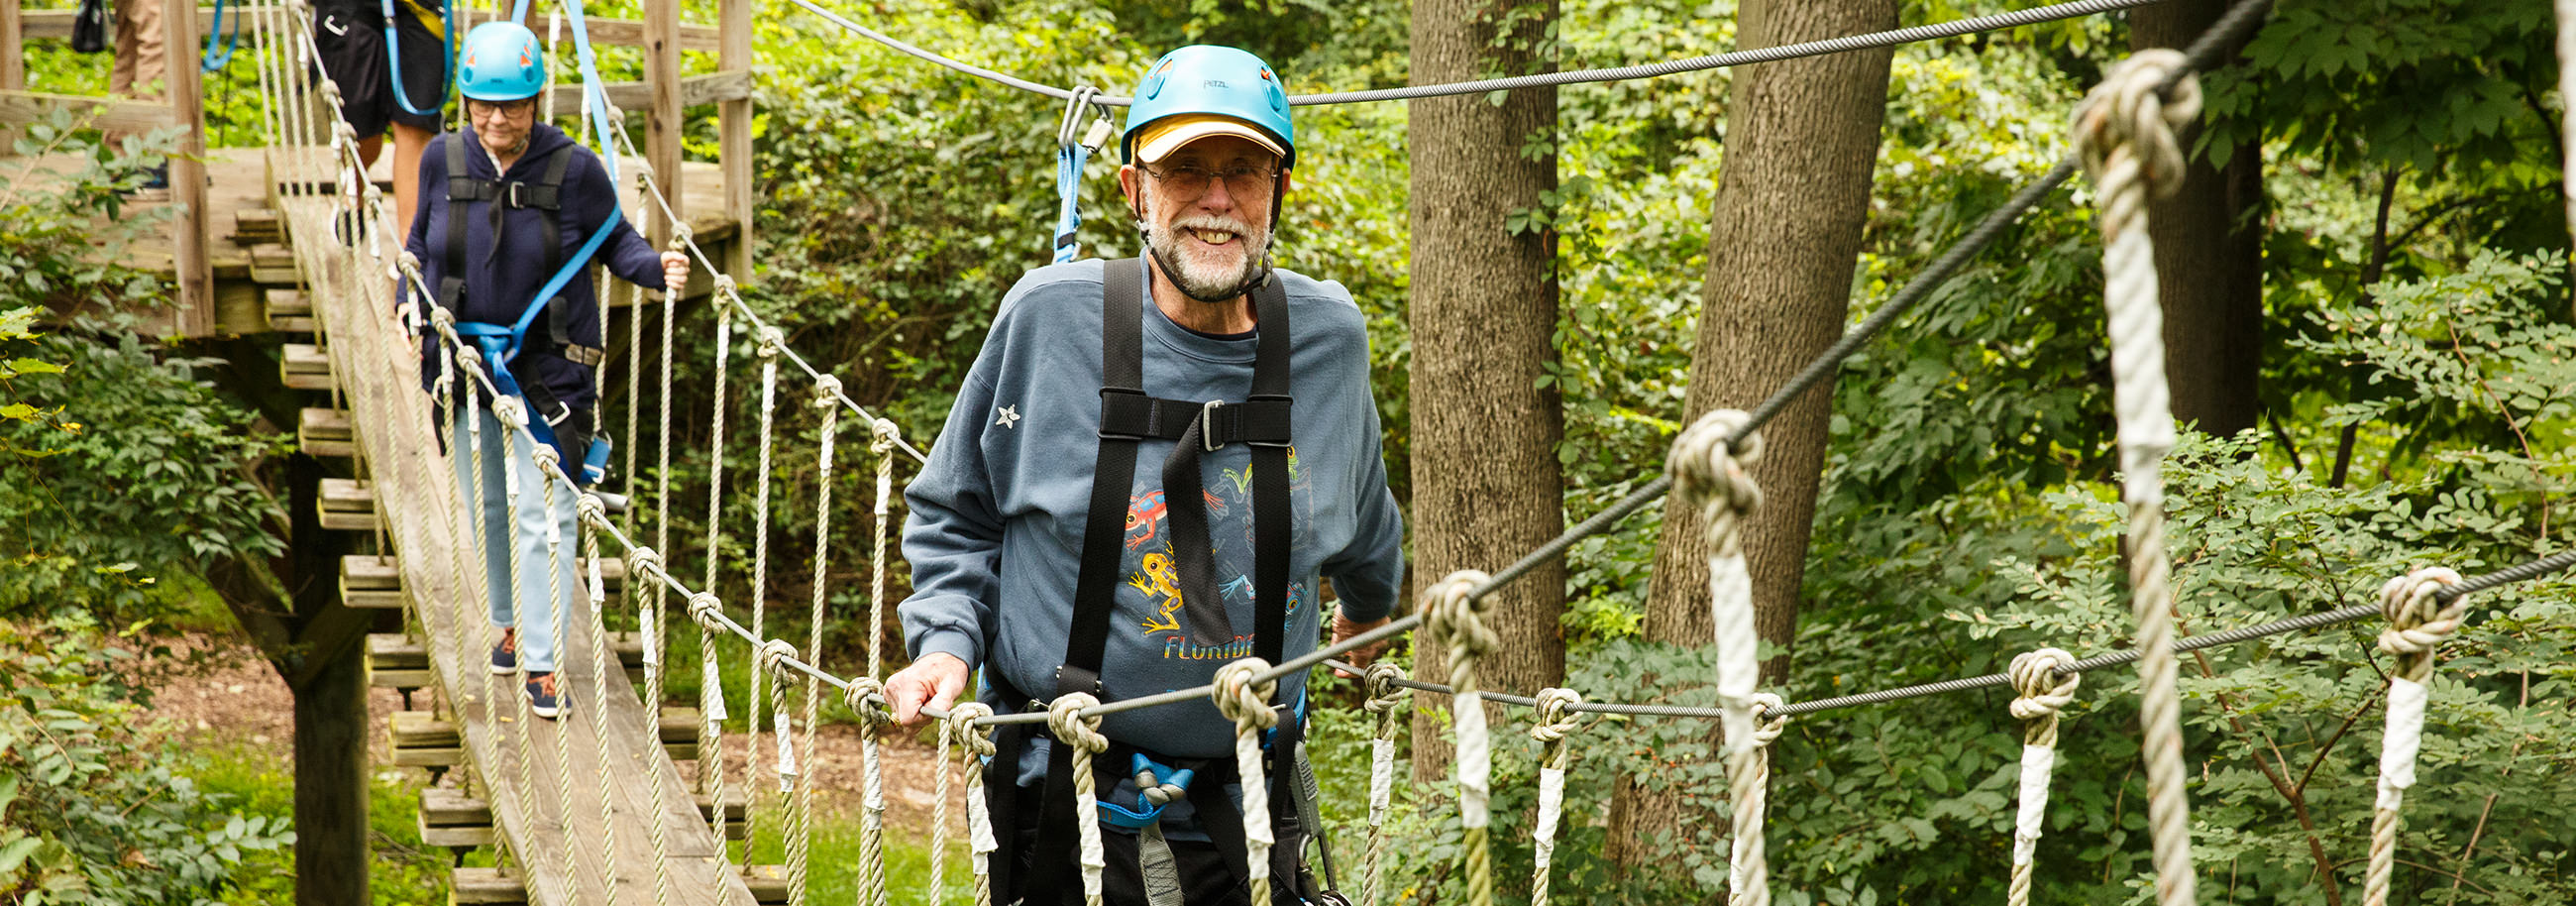 Live With Purpose Zip Lining with Garden Spot Village